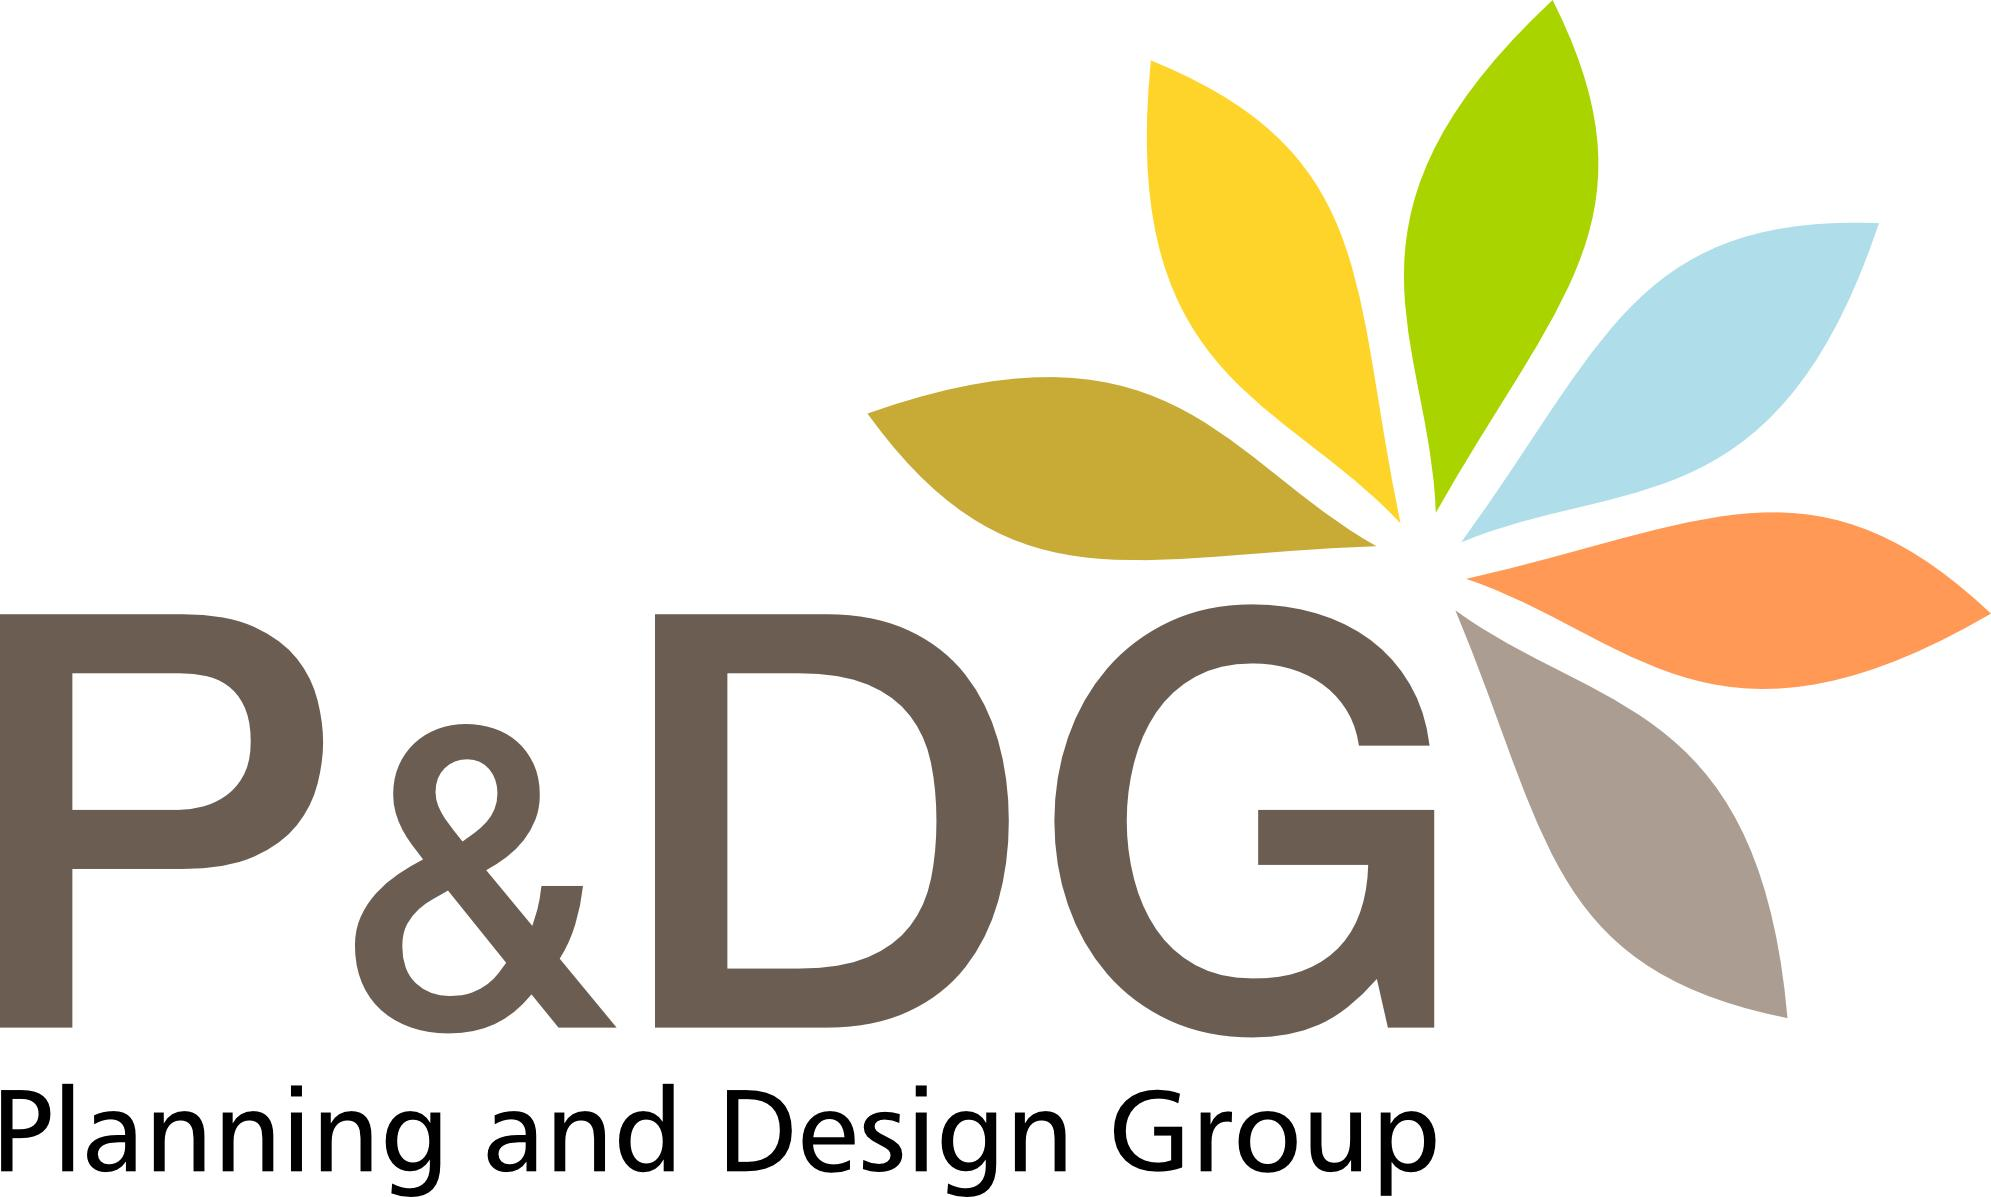 Planning and Design Group